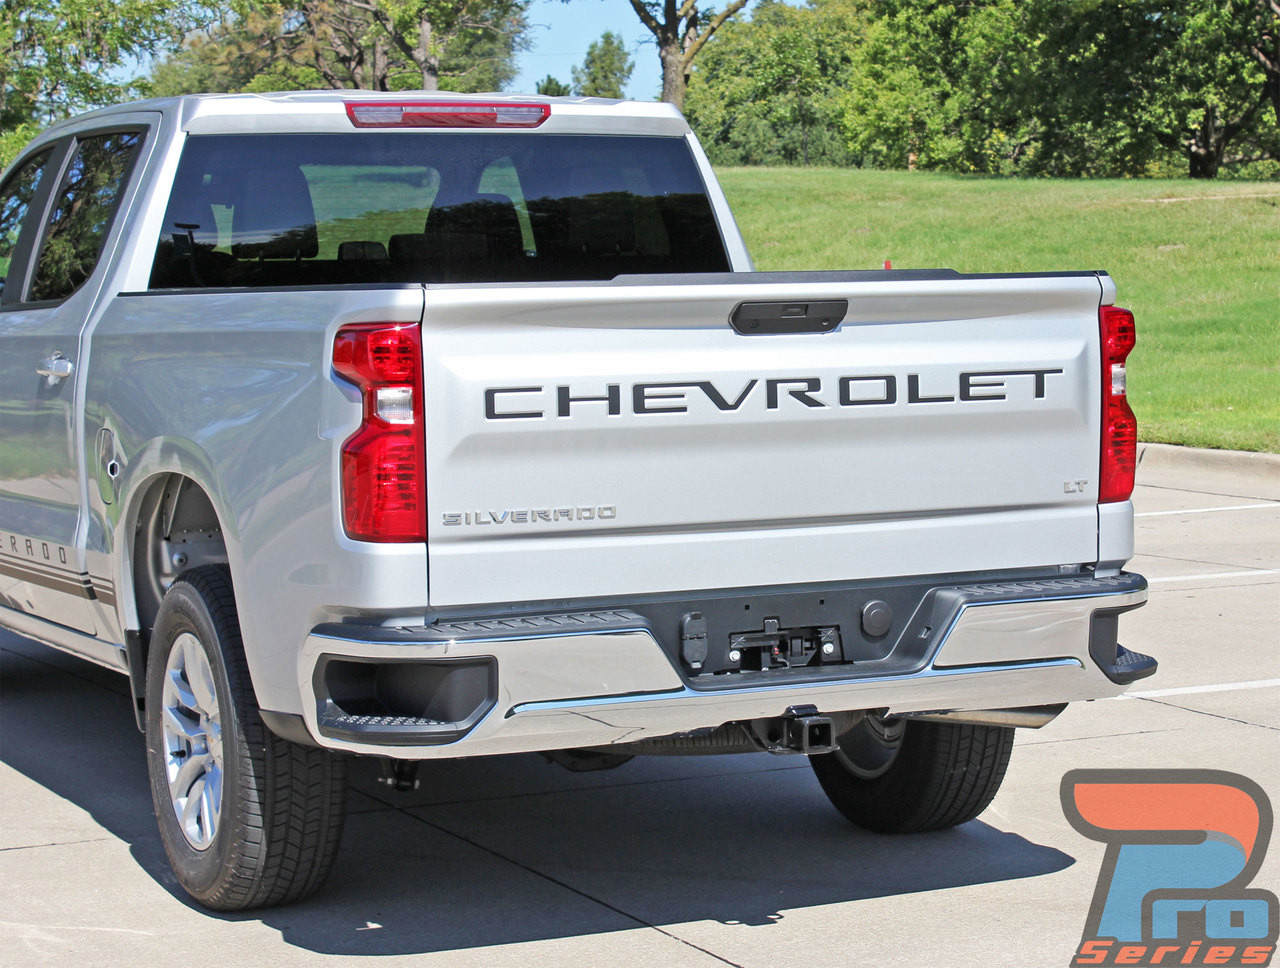 2020 2019 Chevy Silverado CHEVROLET Tailgate Letters Decals